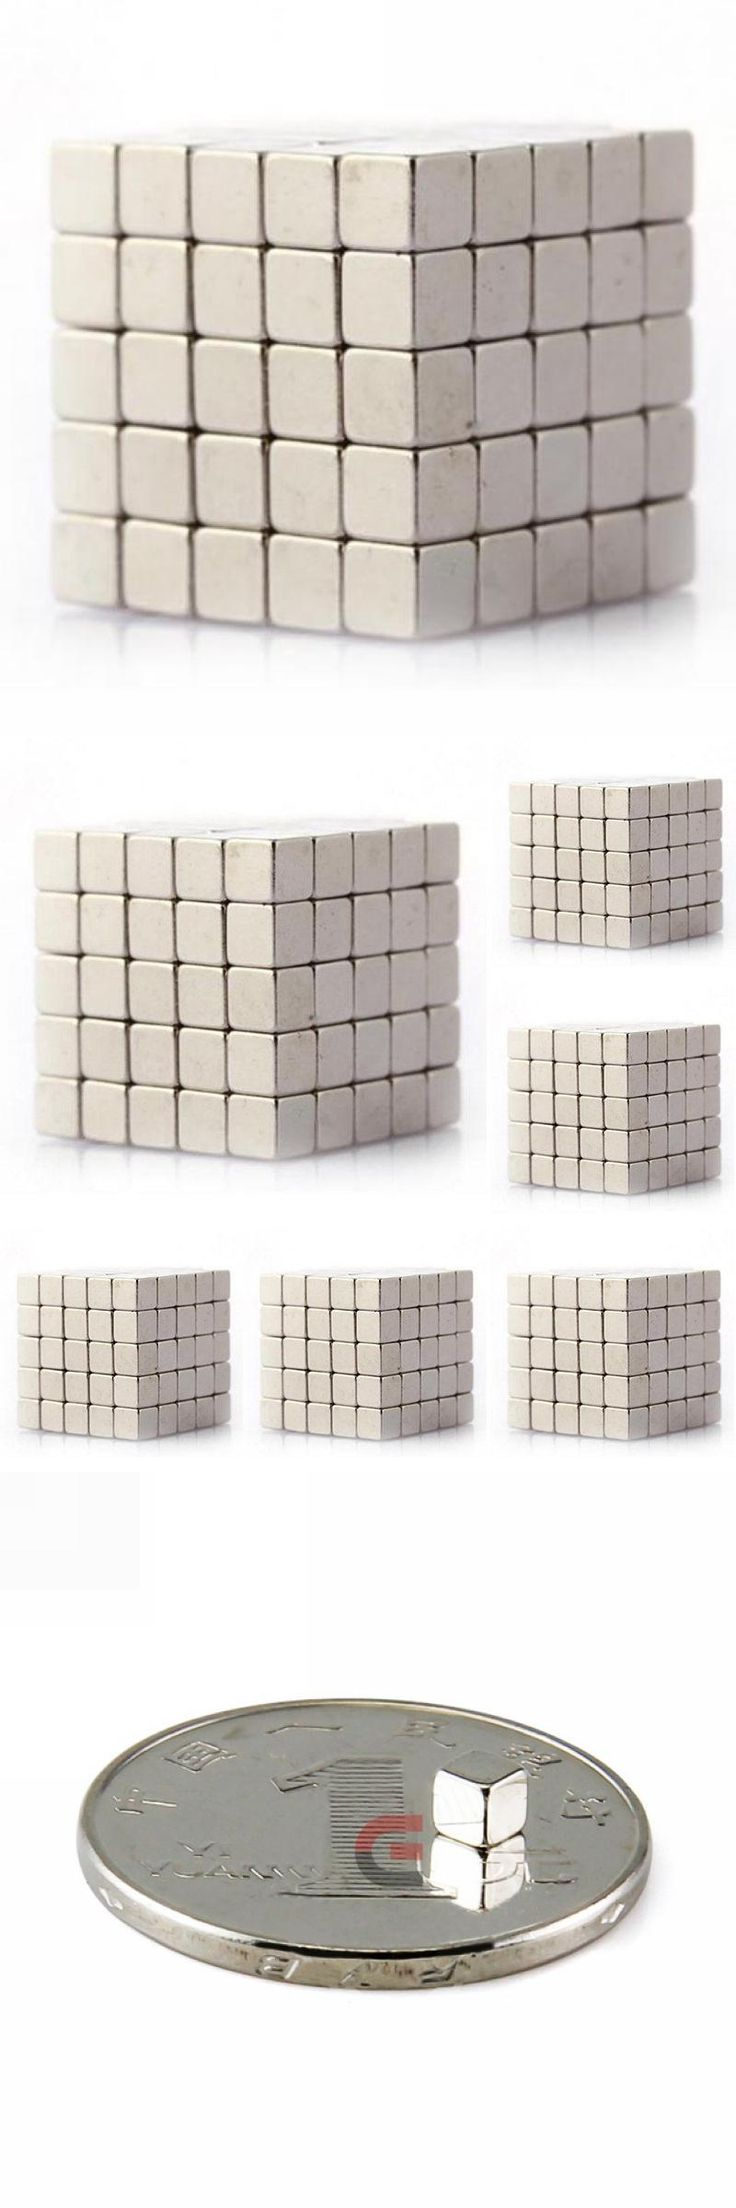 [Visit to Buy] 100pcs Super Strong Magnets Cube Rare Earth Disc Neodymium N35 3mm x 3mm x 3m #Advertisement